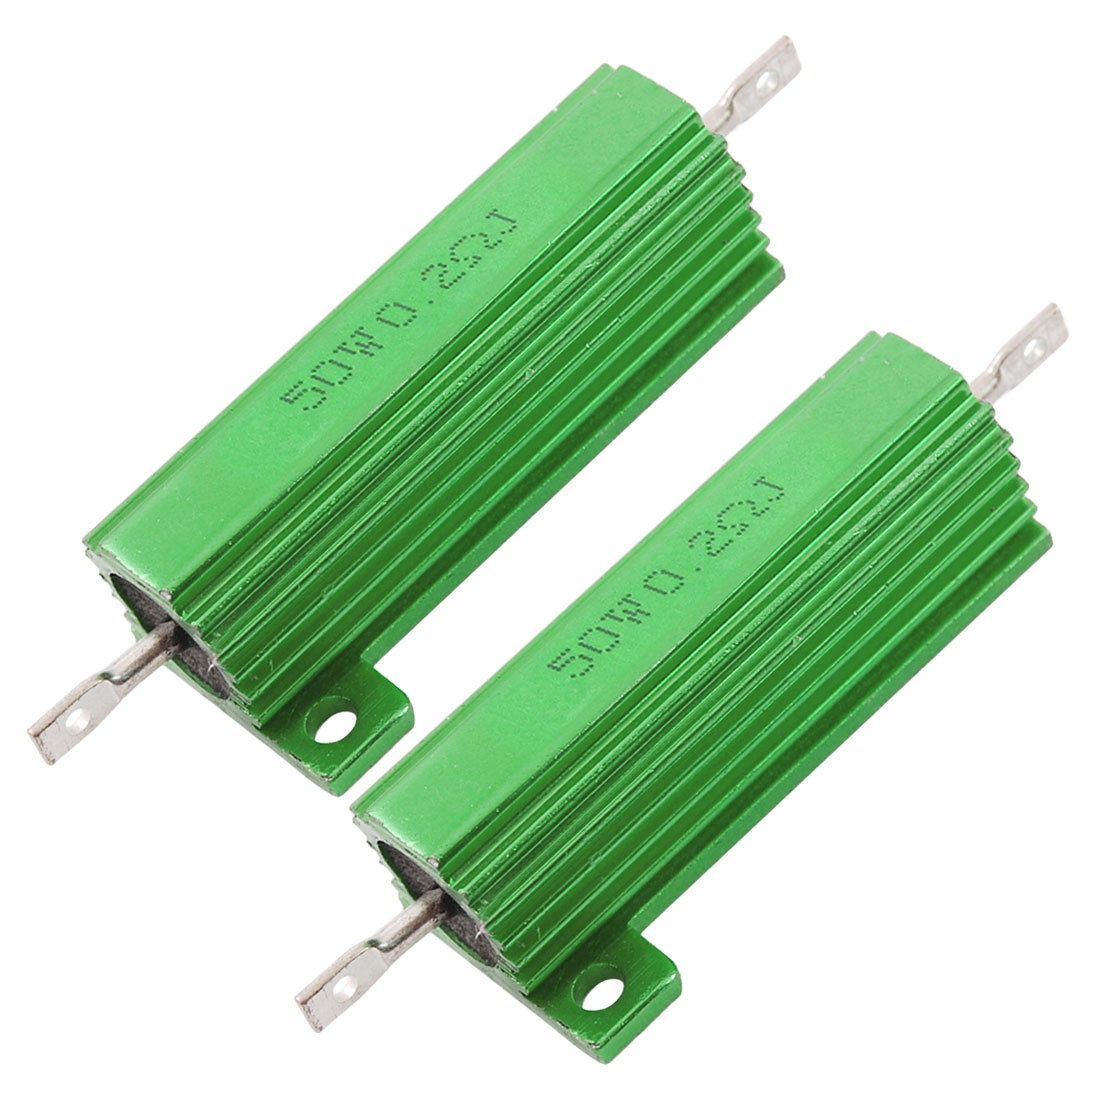 2 x Chassis Mounted 50W 0.2 Ohm 5% Aluminum Case Wirewound Resistors